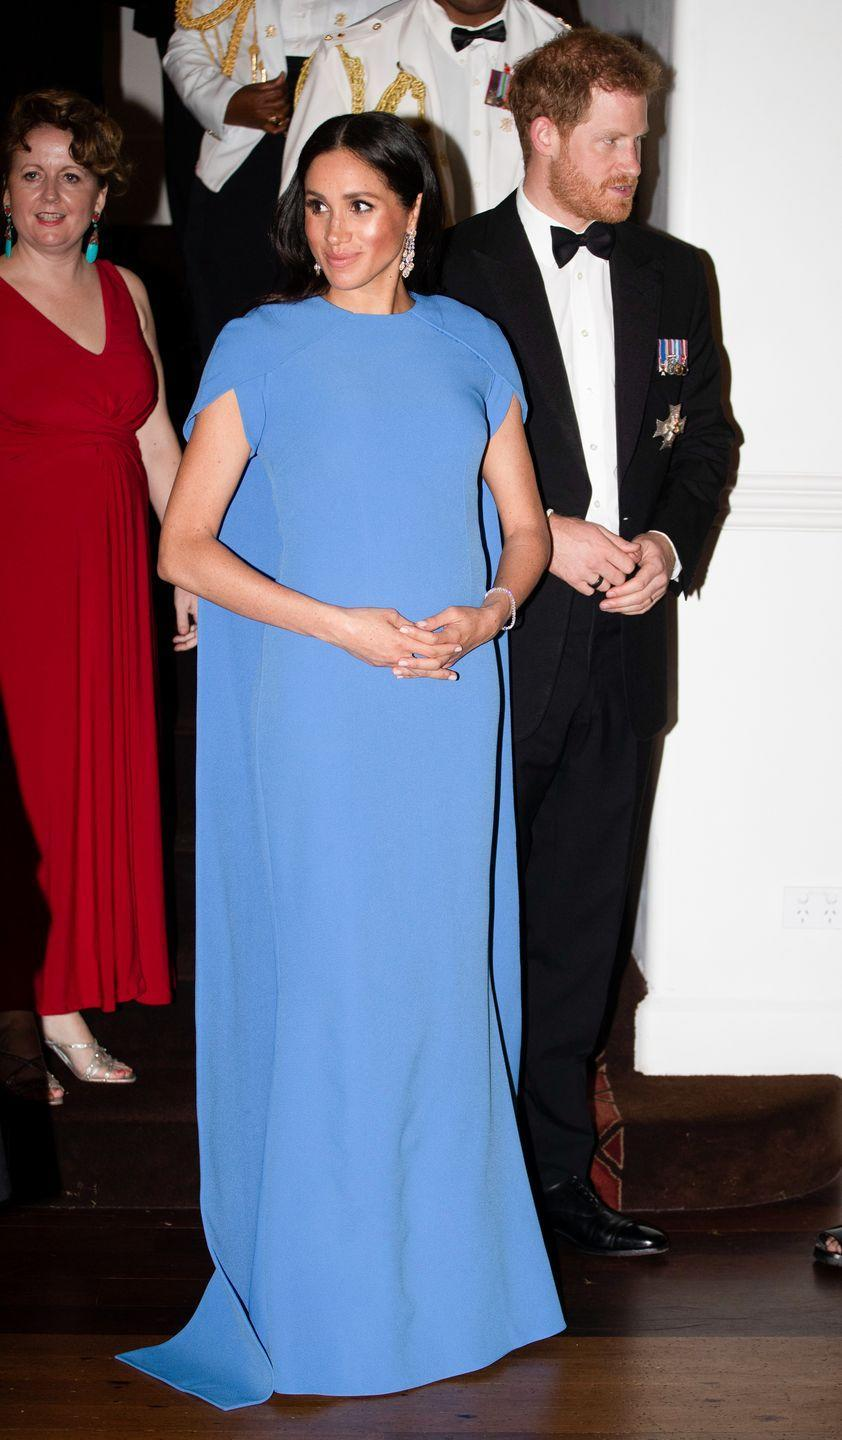 <p>Meghan Markle looked regal in a Safiyaa evening gown during her royal tour in Fiji. The cape detail reminds us of the layered skirt on Cinderella's ball gown. </p>